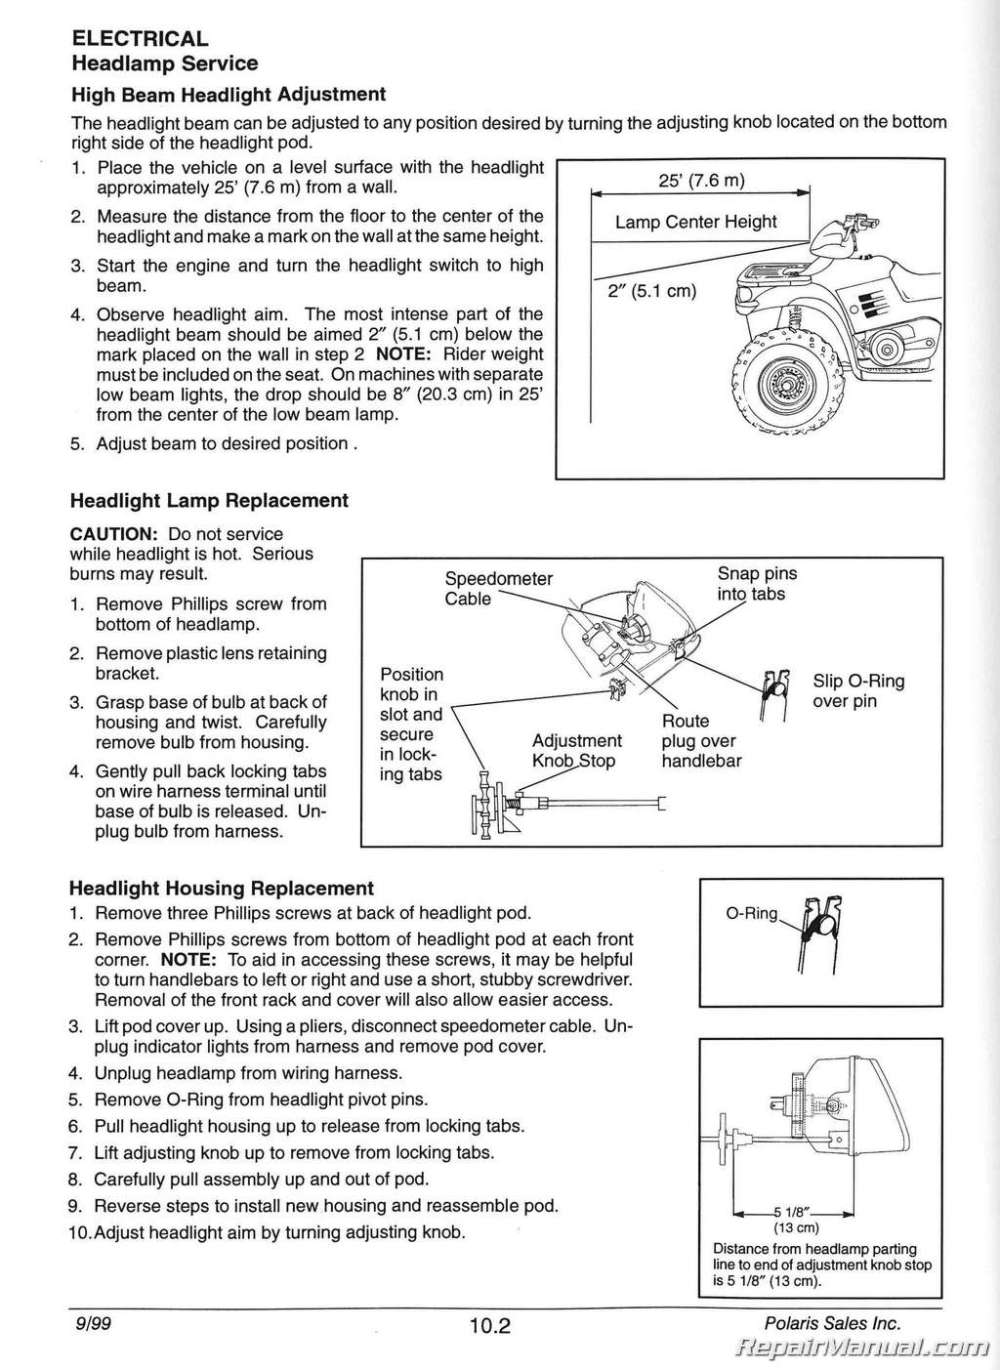 medium resolution of 1996 2000 polaris sportsman 335 500 atv service manual rh repairmanual com 1998 polaris sportsman 500 4x4 wiring diagram 1998 polaris sportsman wiring